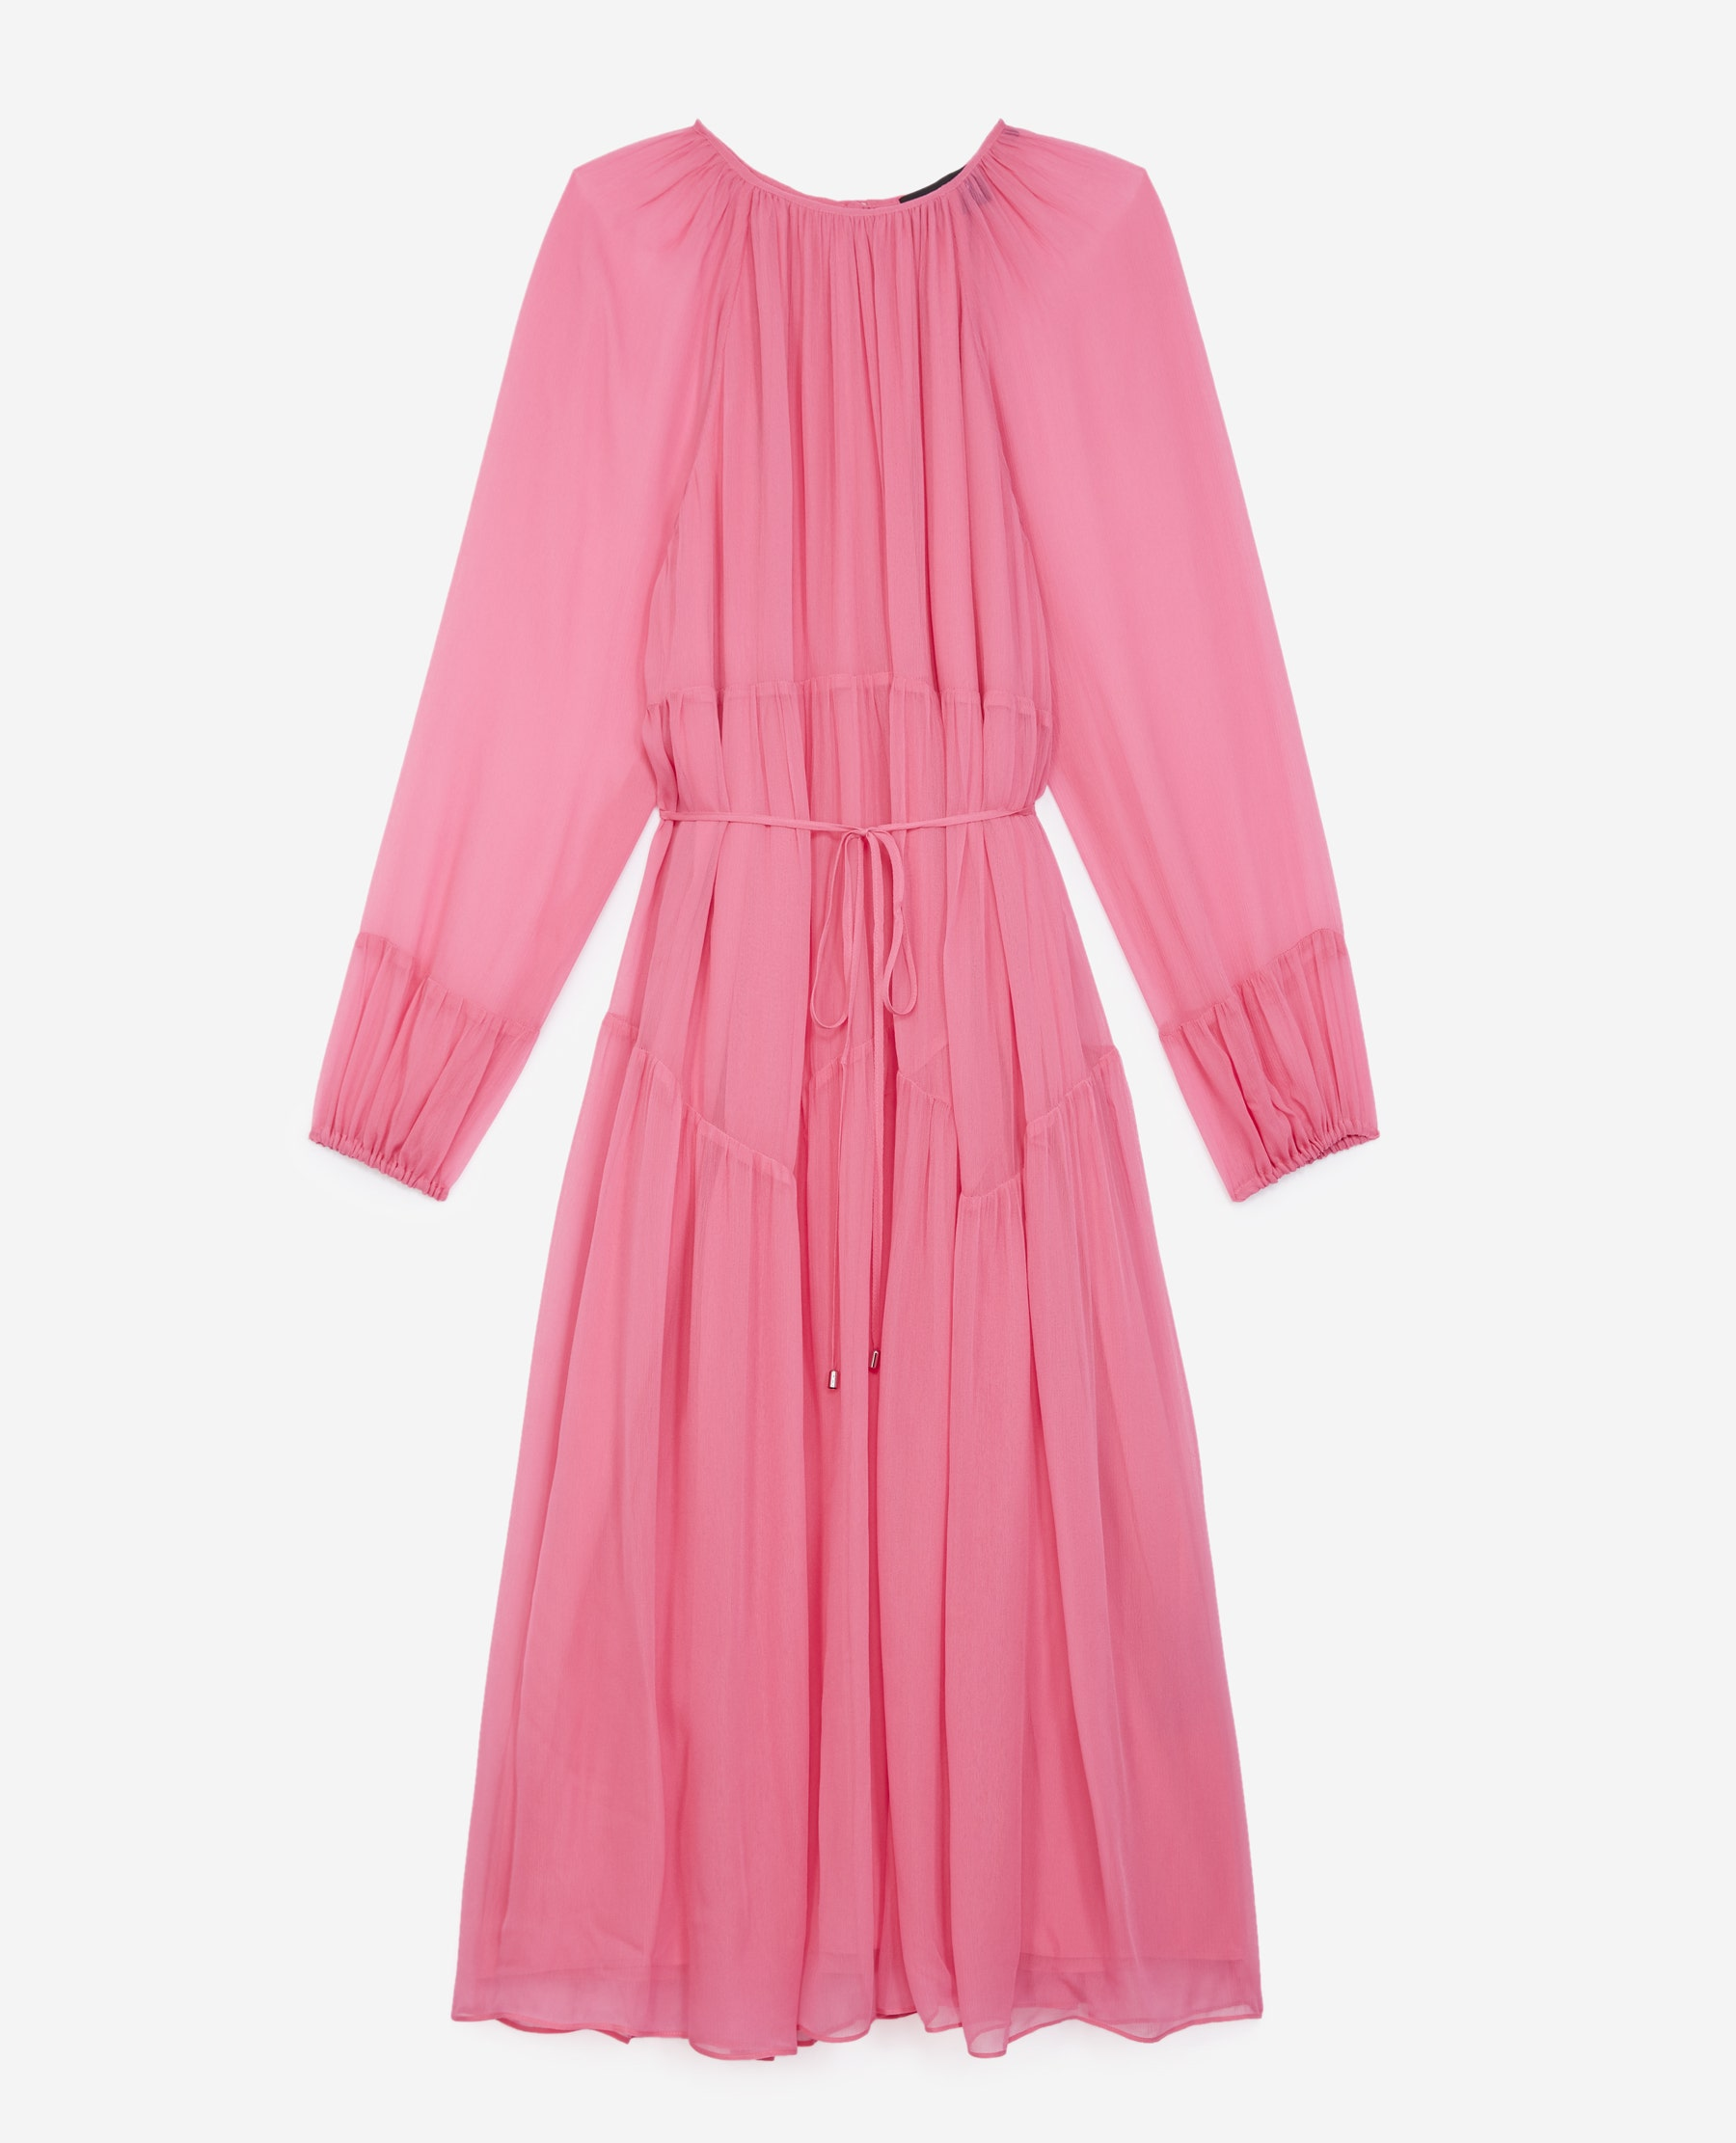 Robe longue rose vif fluide - The Kooples - Modalova